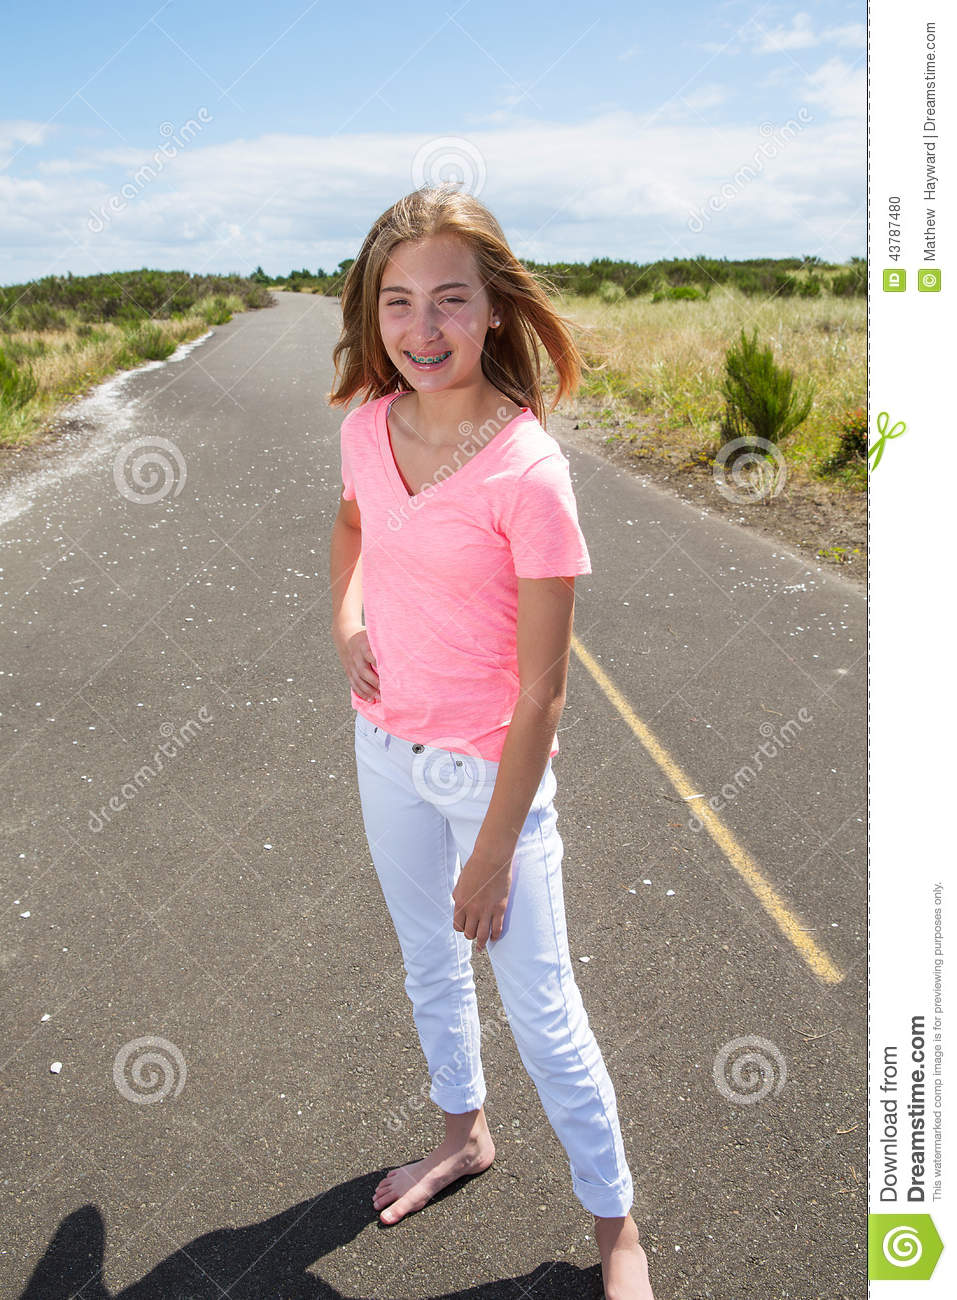 Teen Walking 98